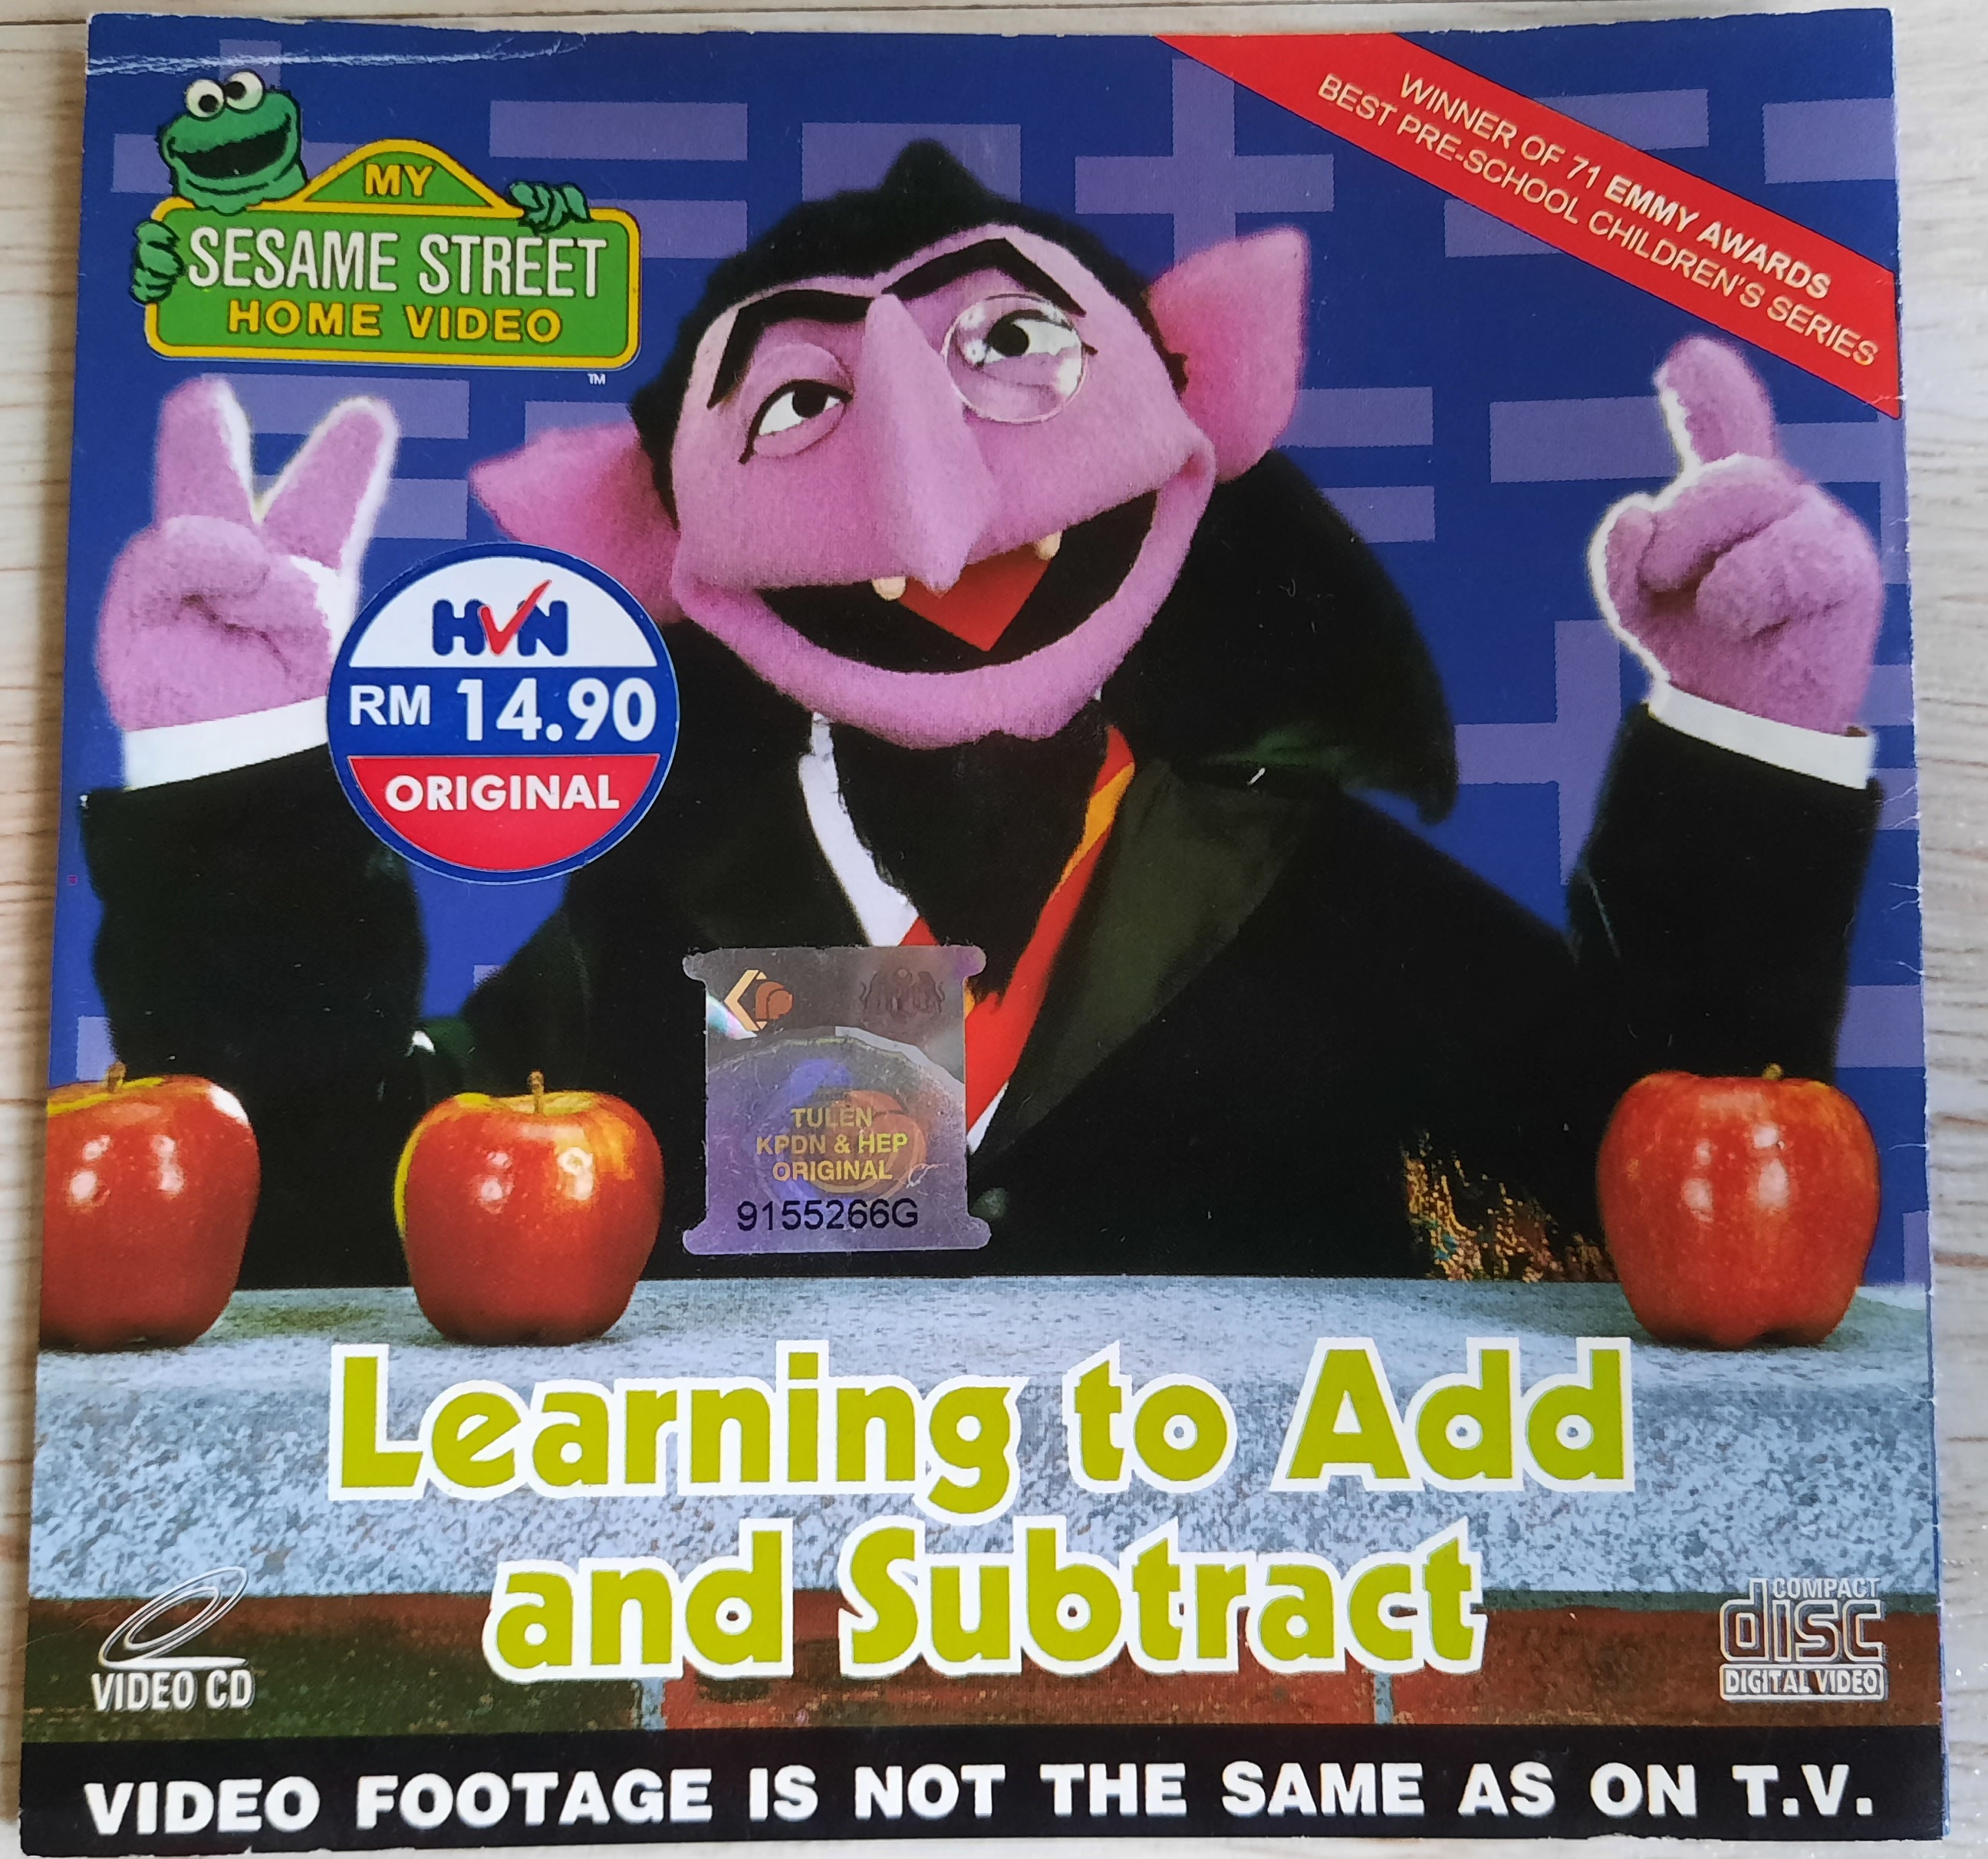 Learningtoaddandsubtractasianvcd